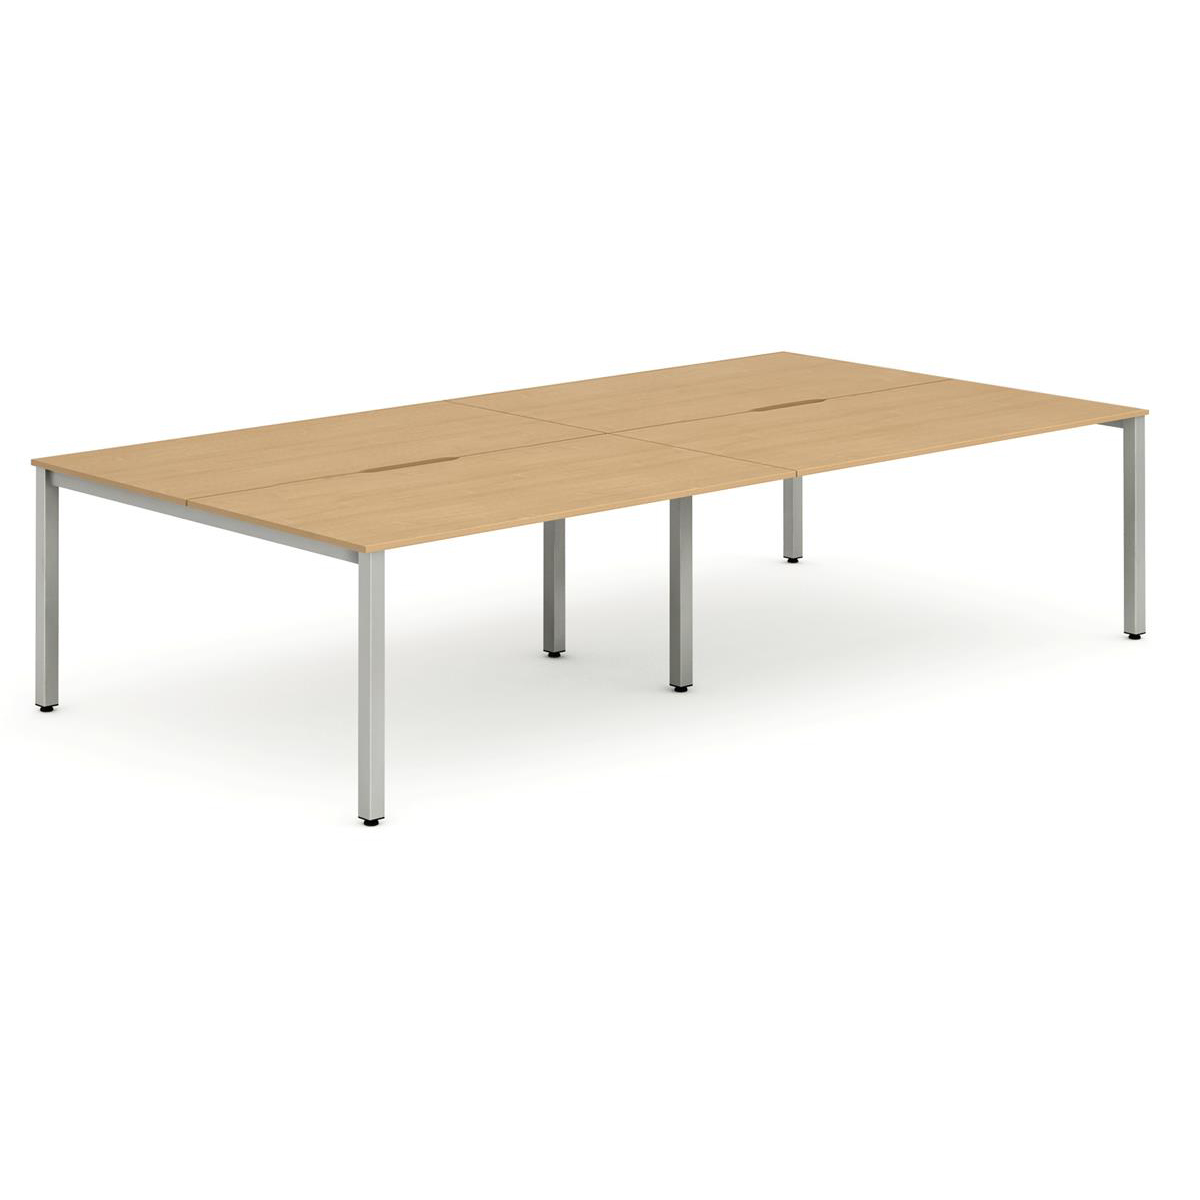 Trexus Bench Desk 4 Person Back to Back Configuration Silver Leg 3200x1600mm Beech Ref BE252